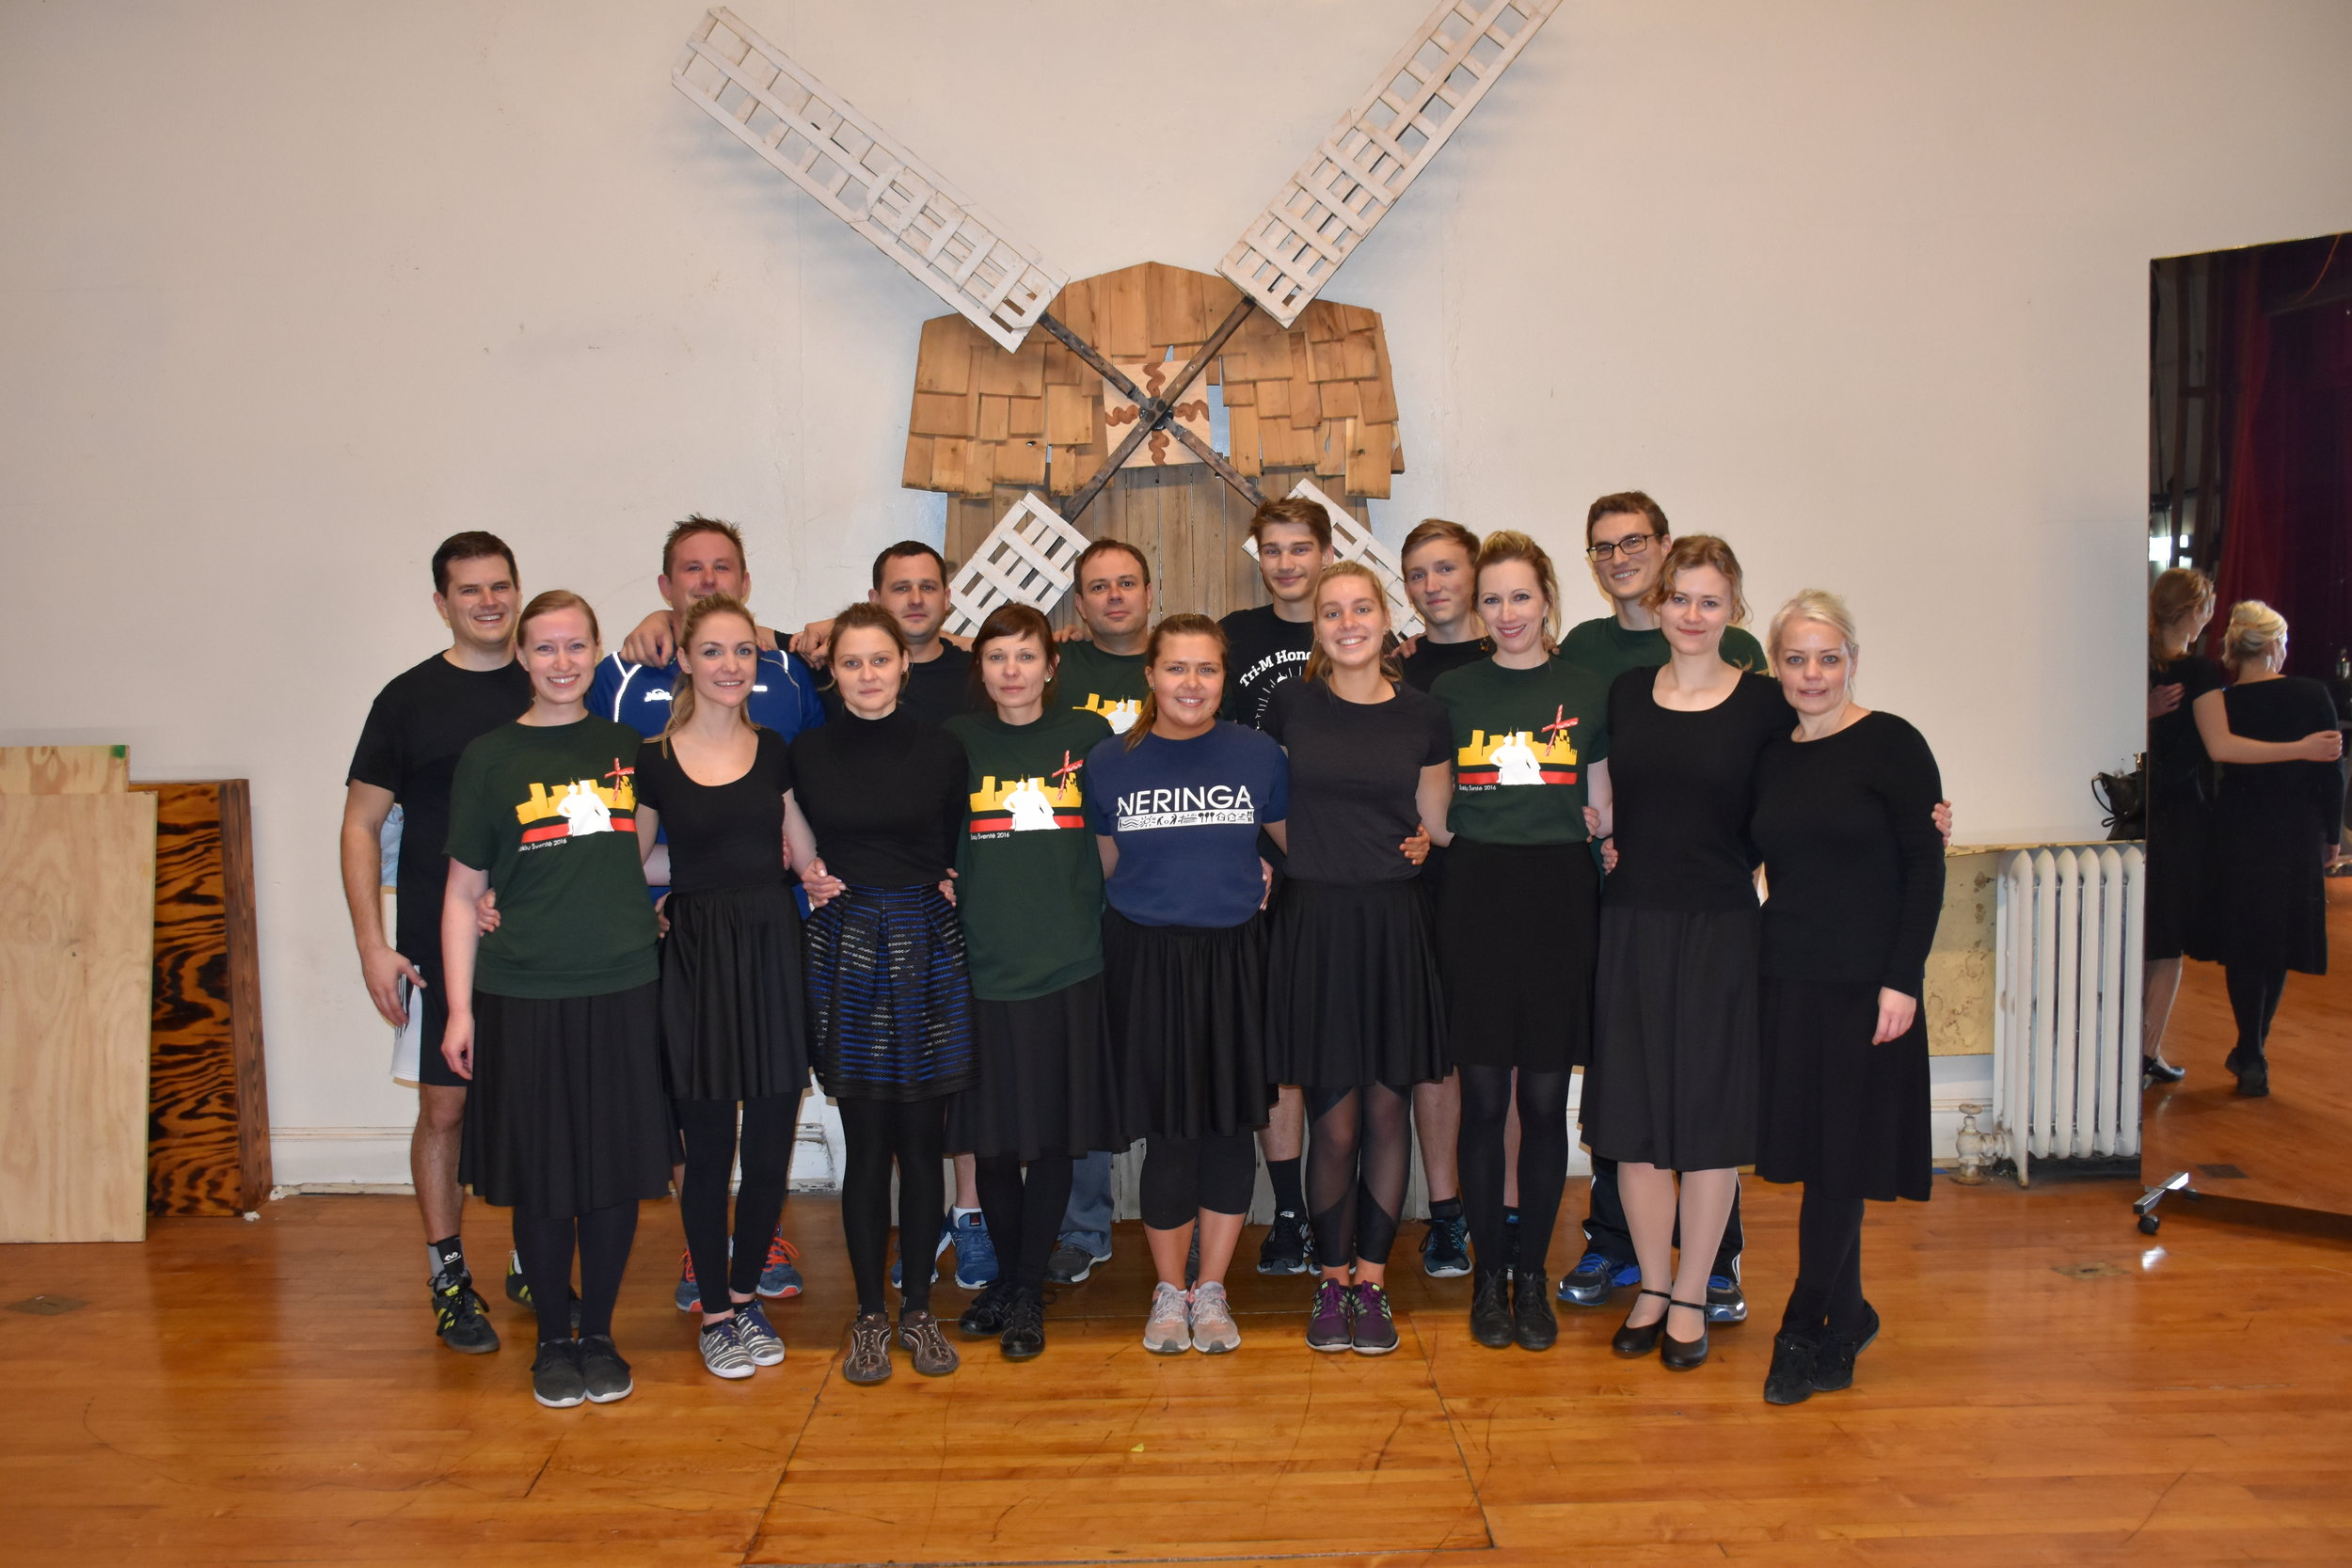 The group of dancers that went to Lithuania in the summer of 2018, practicing on the main stage at the Lithuanian Hall.